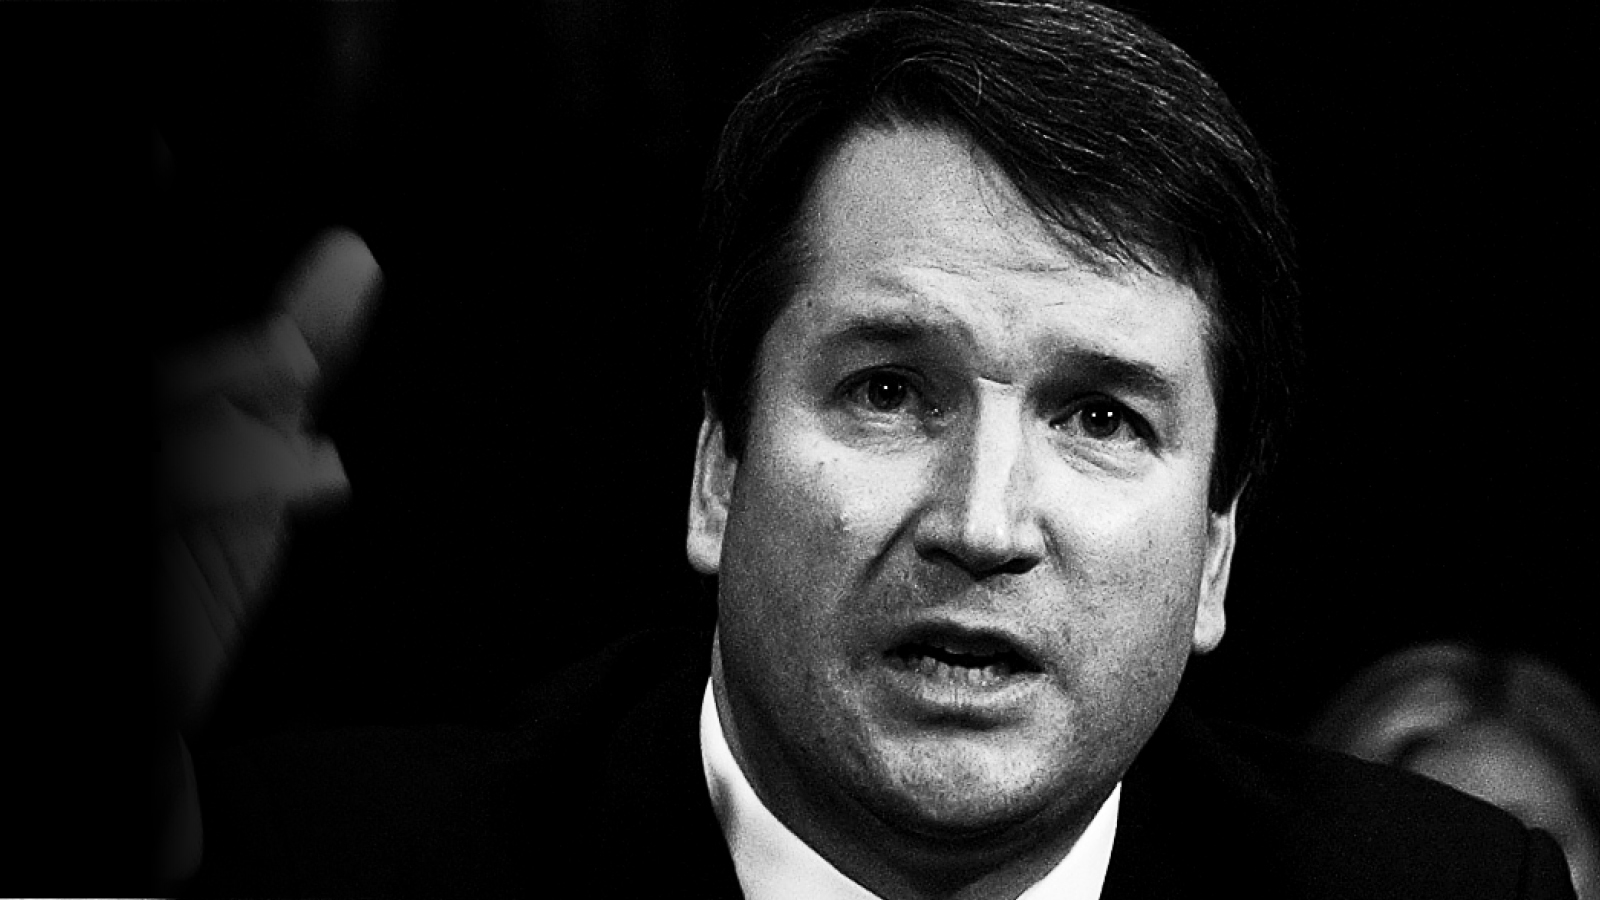 HRC Opposes Kavanaugh Trump's Pick to Undermine LGBTQ Rights Reproductive Rights and Health Care				 									By Charlotte Clymer